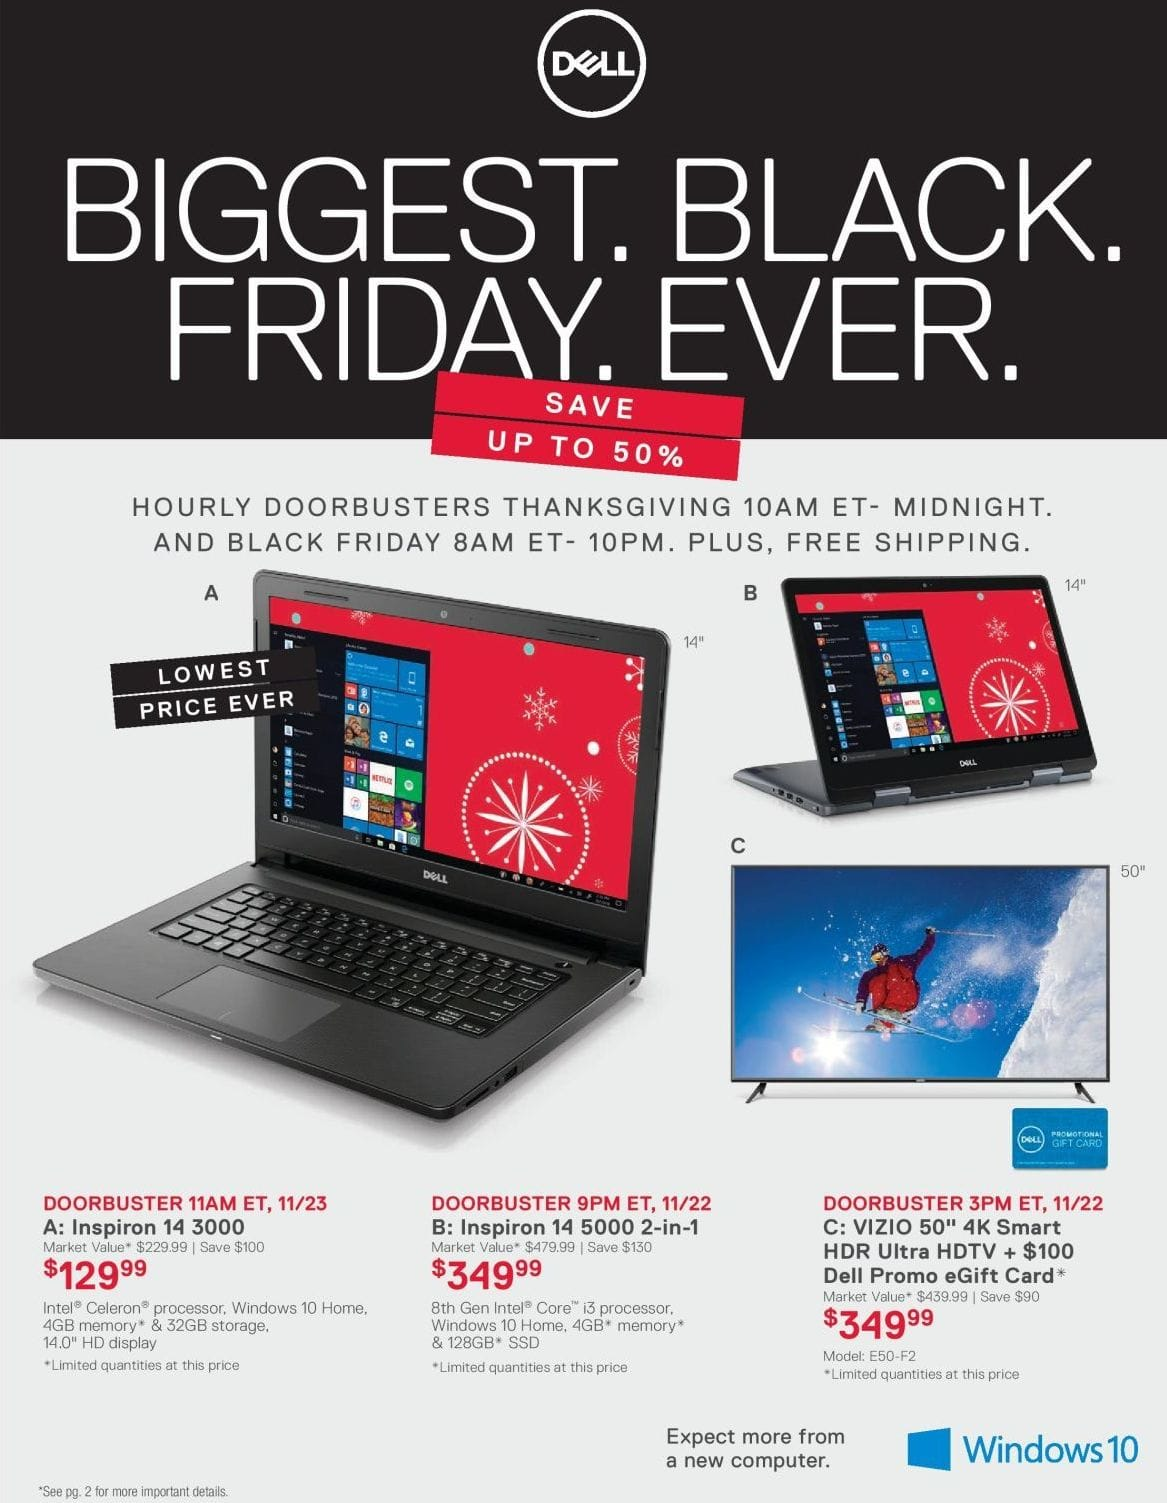 Dell Home Office Black Friday Inspiron 14 5000 2 In 1 Laptop 8th Gen Intel I3 4GB RAM 128GB SSD Windows 10 For 34999